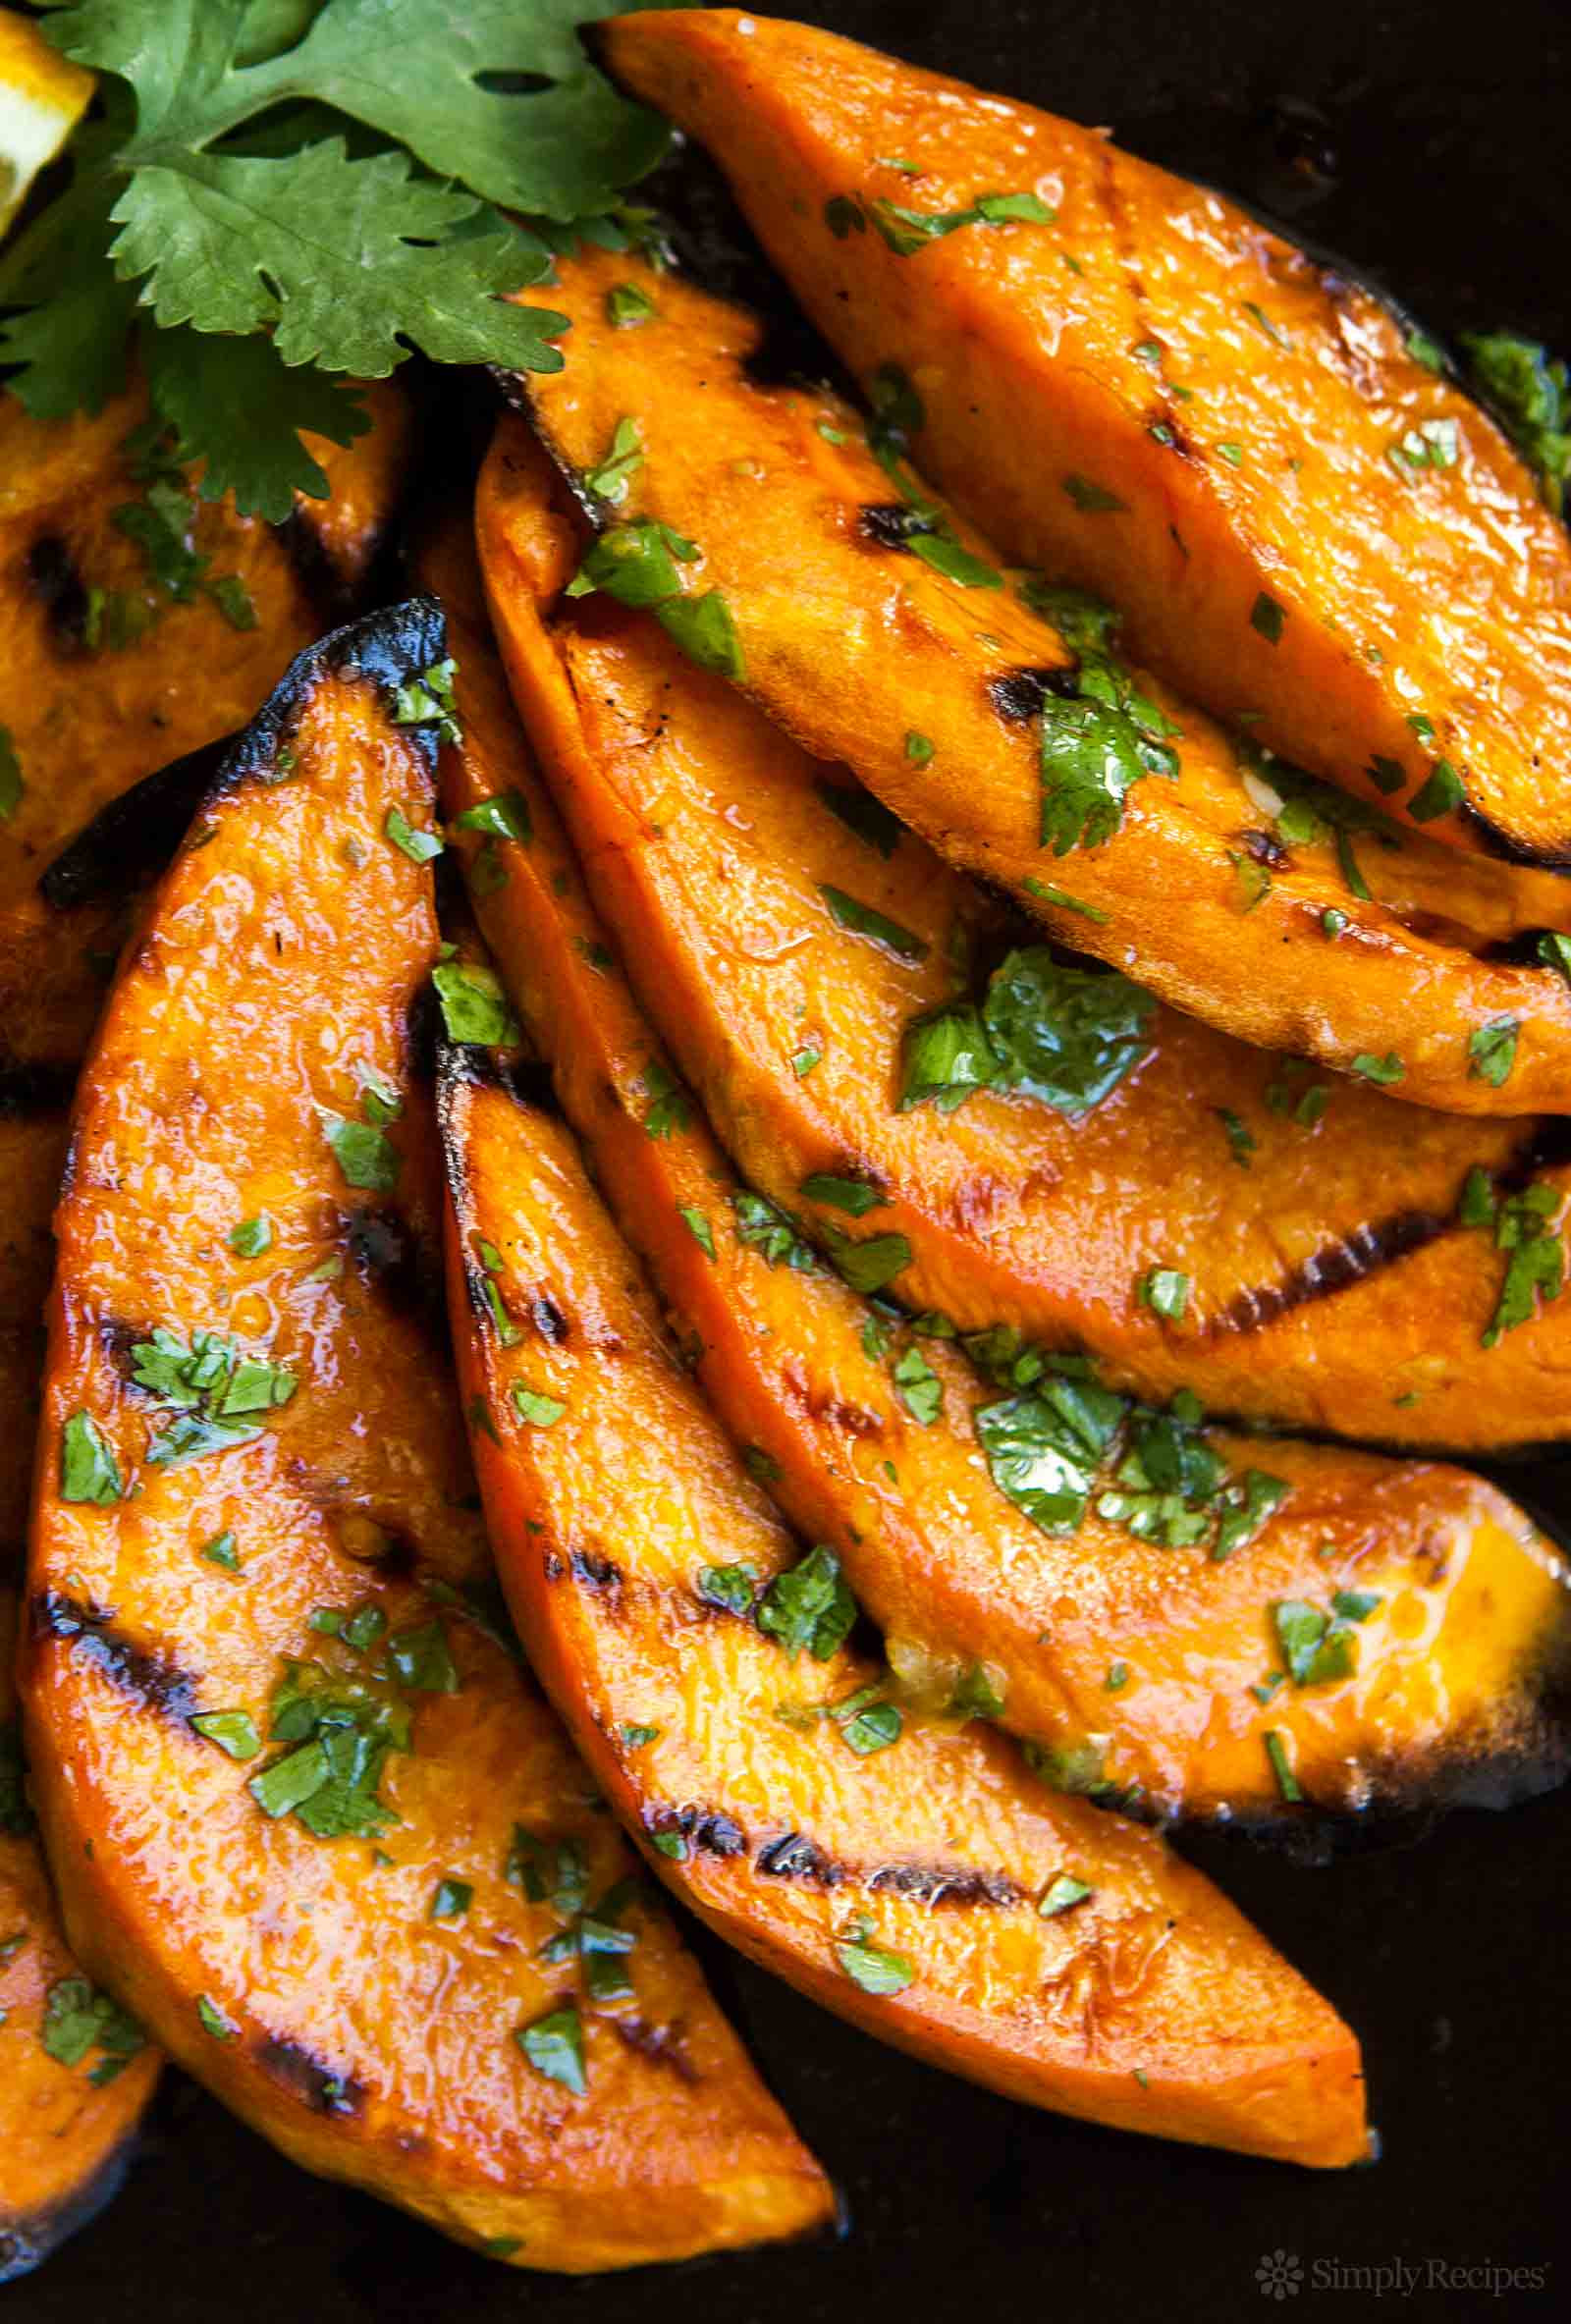 How To Make A Sweet Potato  Grilled Sweet Potatoes Recipe